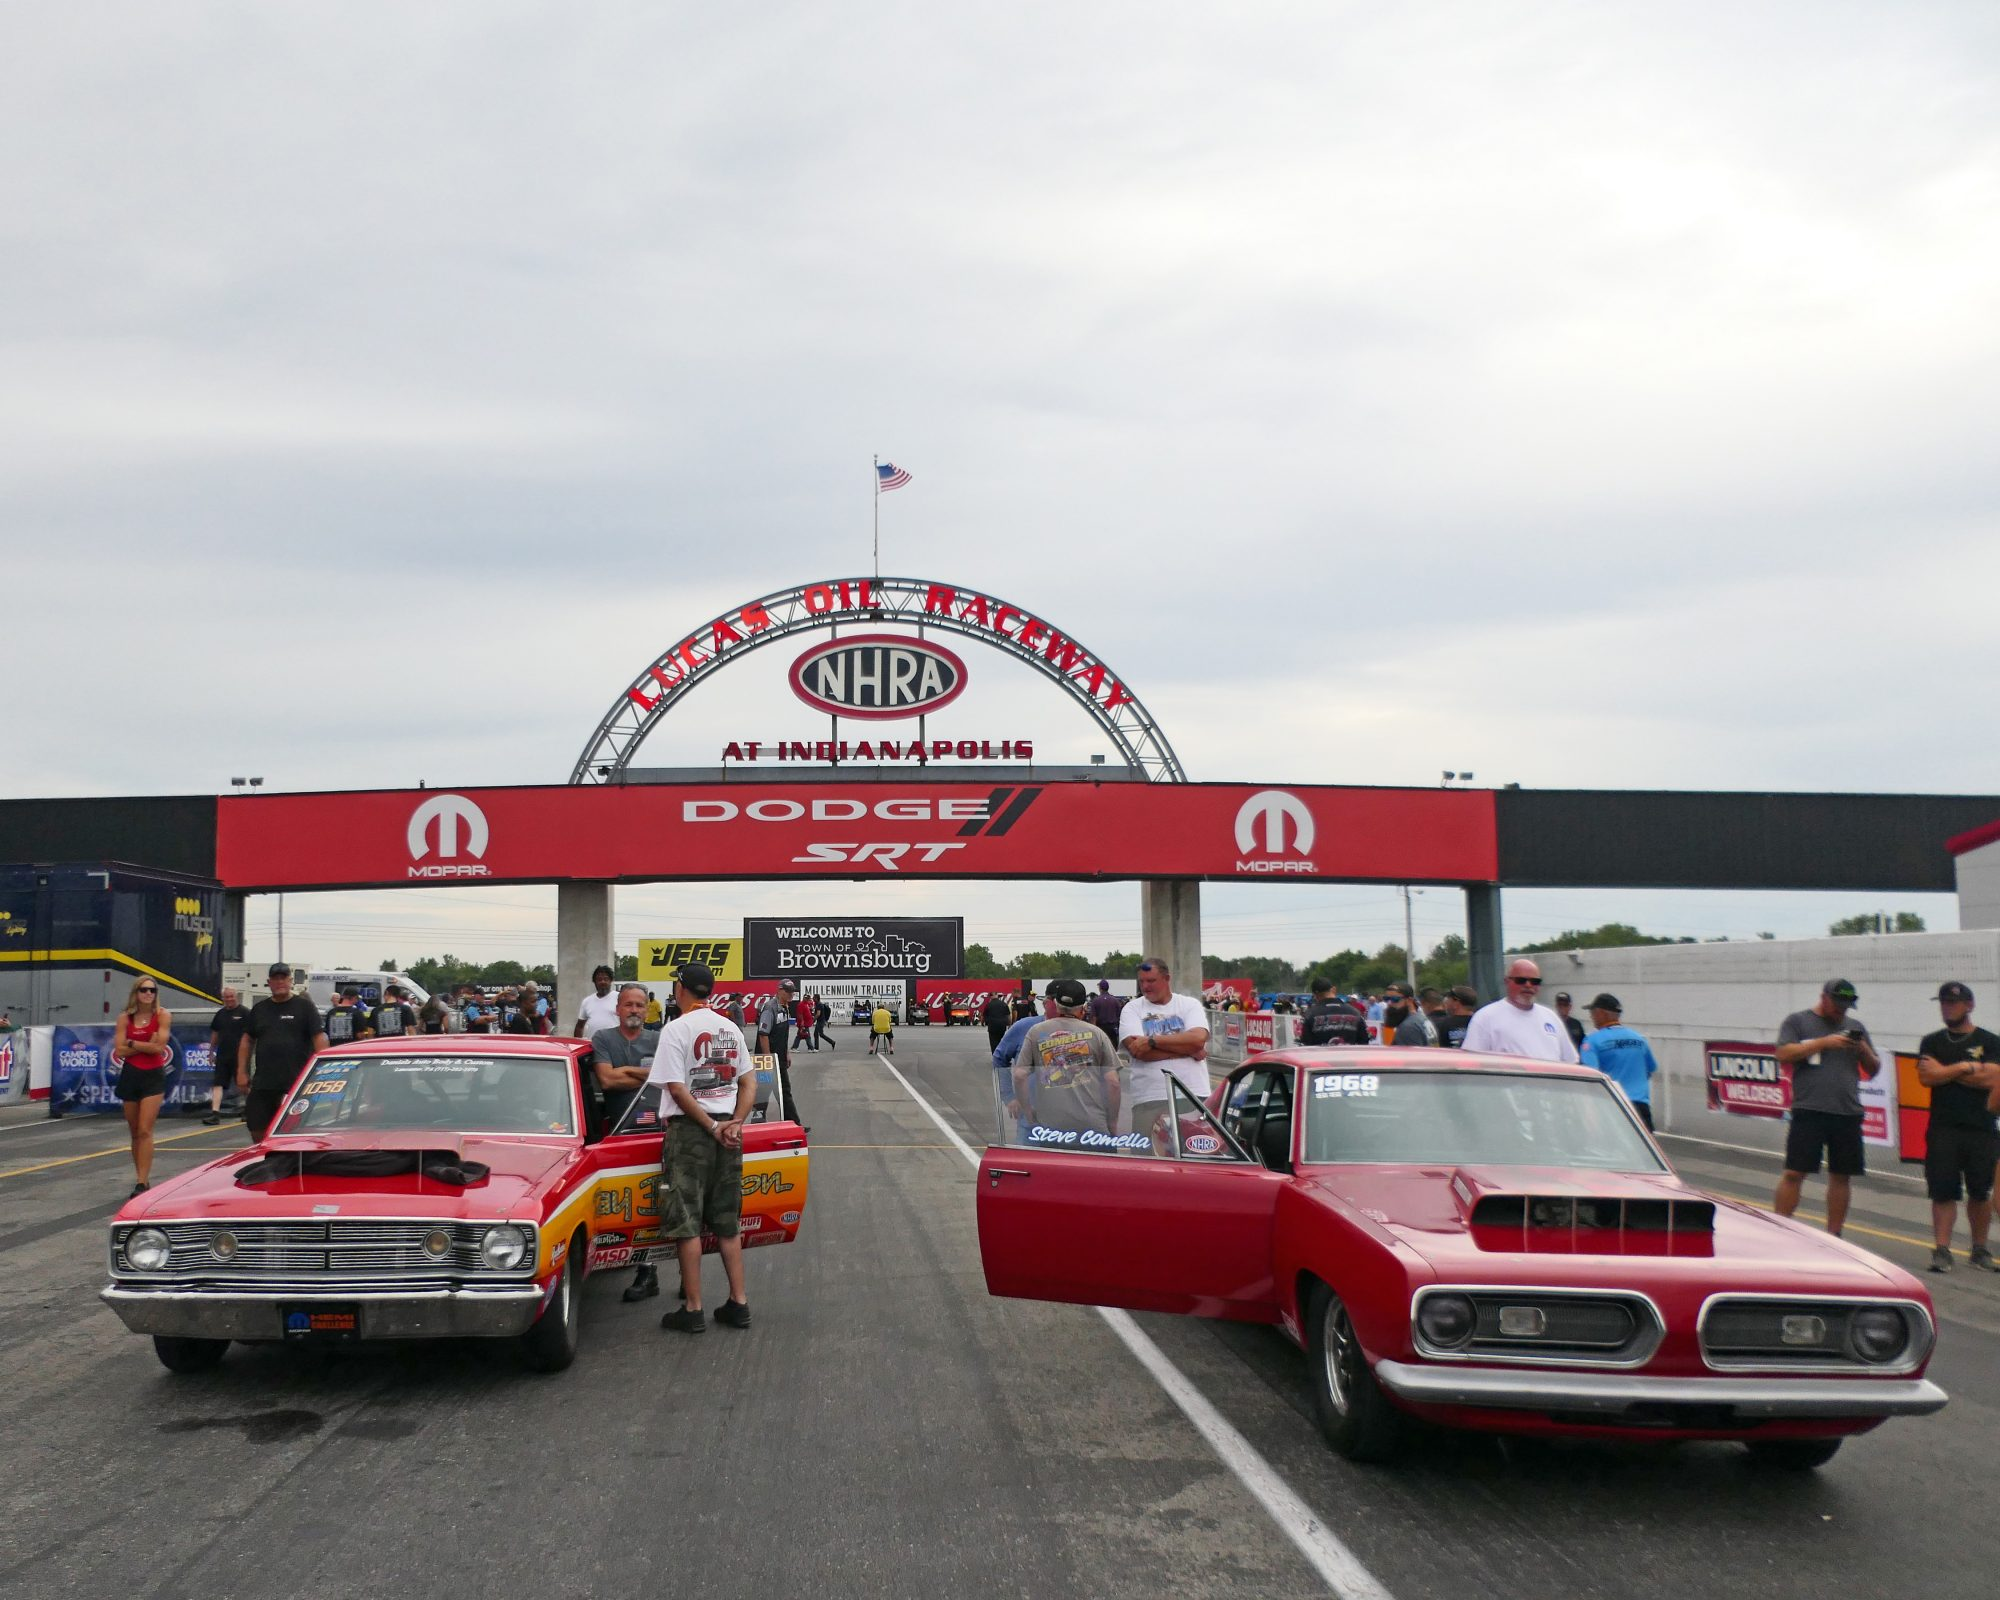 Cars waiting to drag race